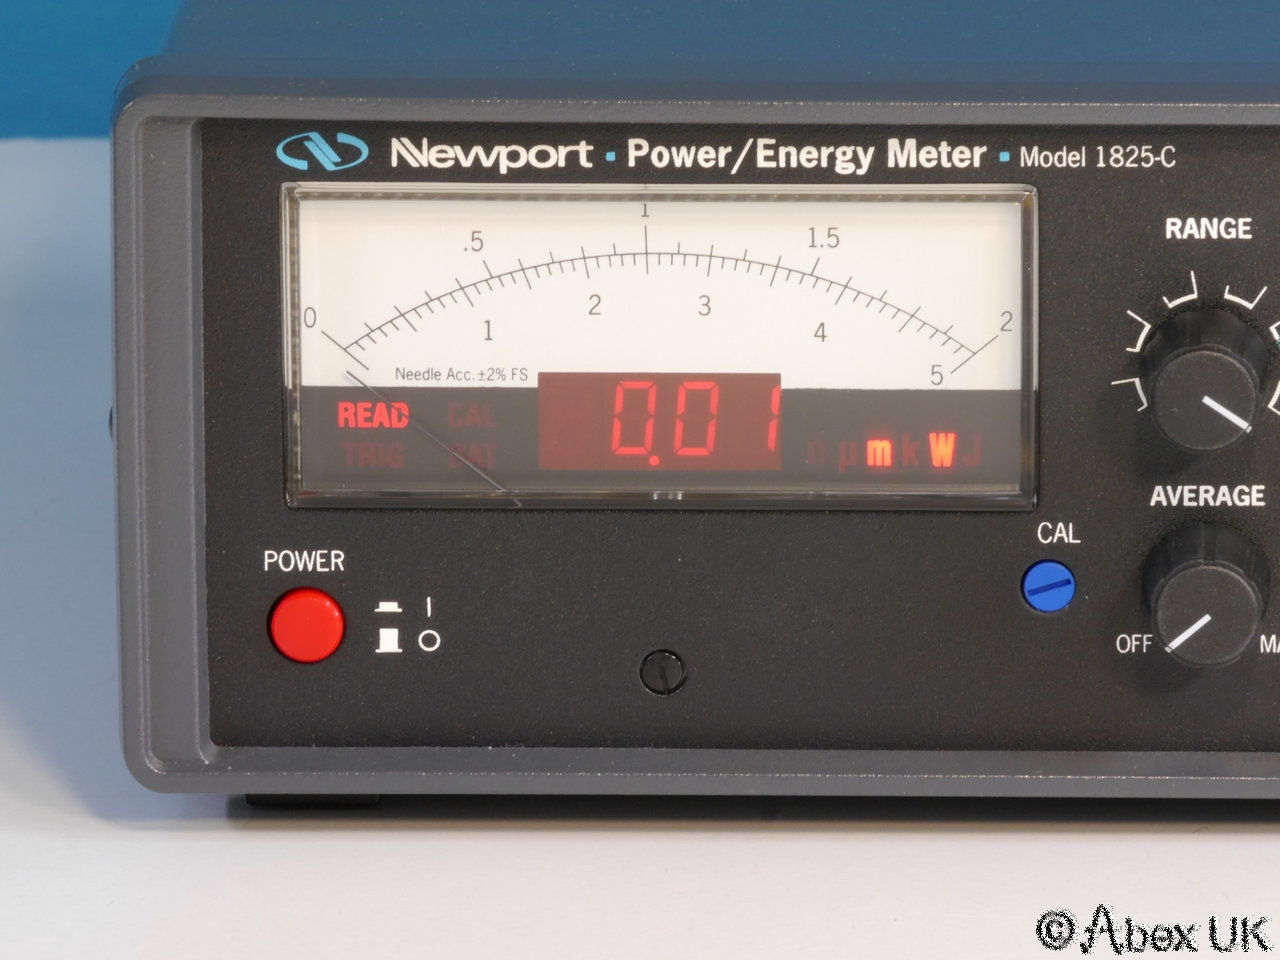 Newport Digital Meter : Newport c laser power energy meter universal input